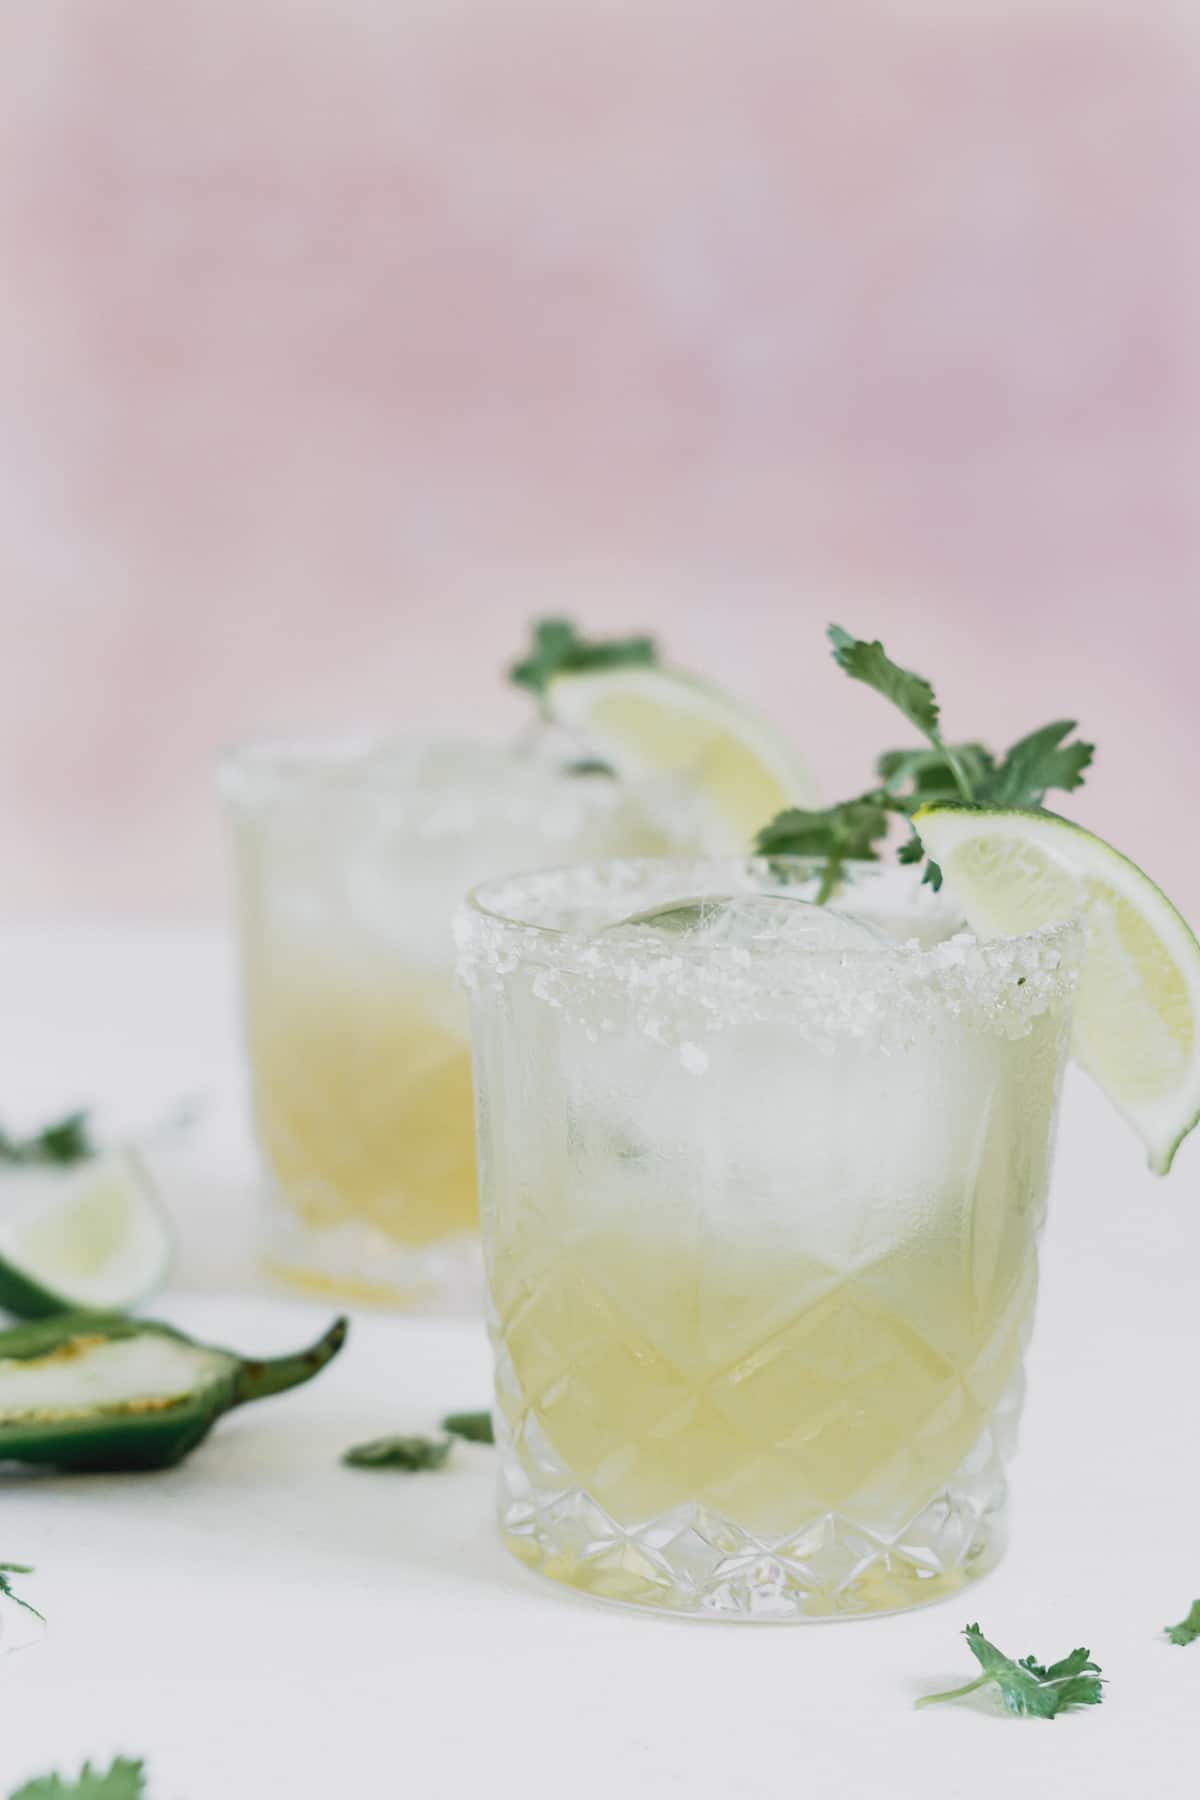 Two glasses full of lime margarita with a lime wedge and green herbs.